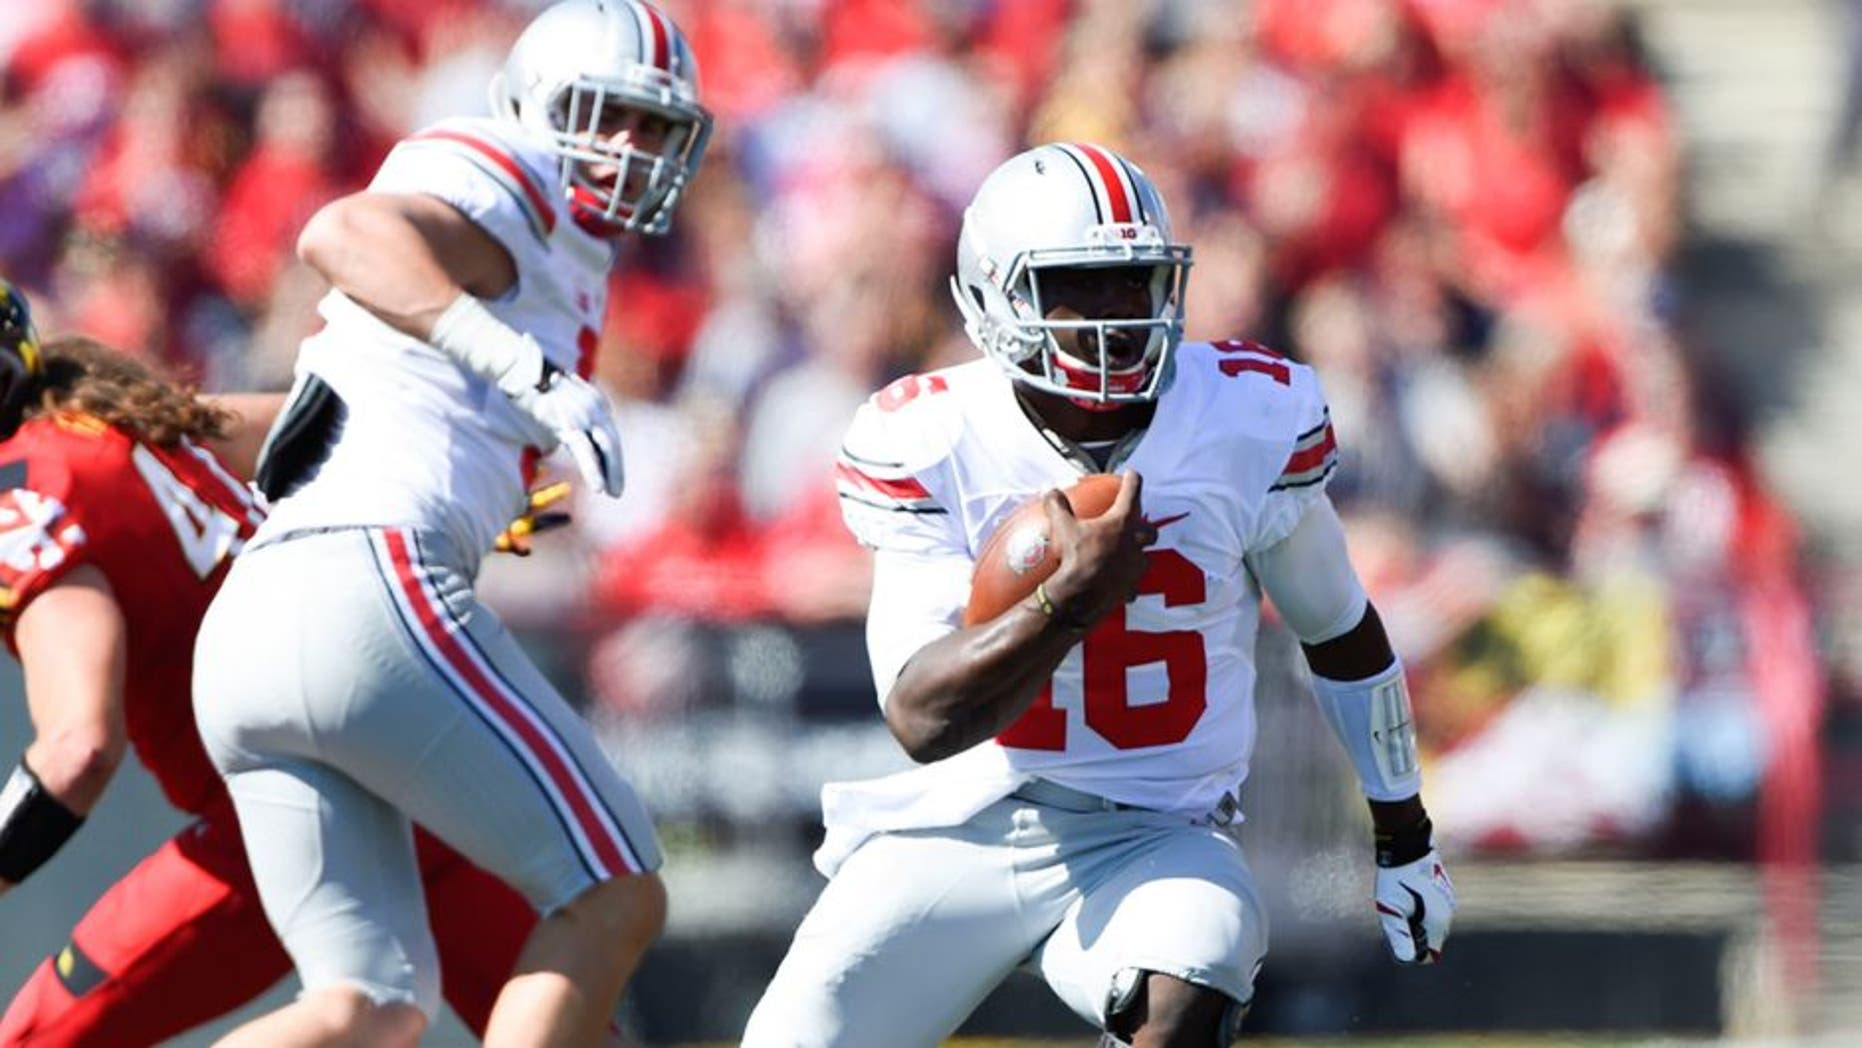 Oct 4, 2014; College Park, MD, USA; Ohio State Buckeyes quarterback J.T. Barrett (16) runs with the ball during the second quarter against the Maryland Terrapins at Byrd Stadium. Mandatory Credit: Tommy Gilligan-USA TODAY Sports